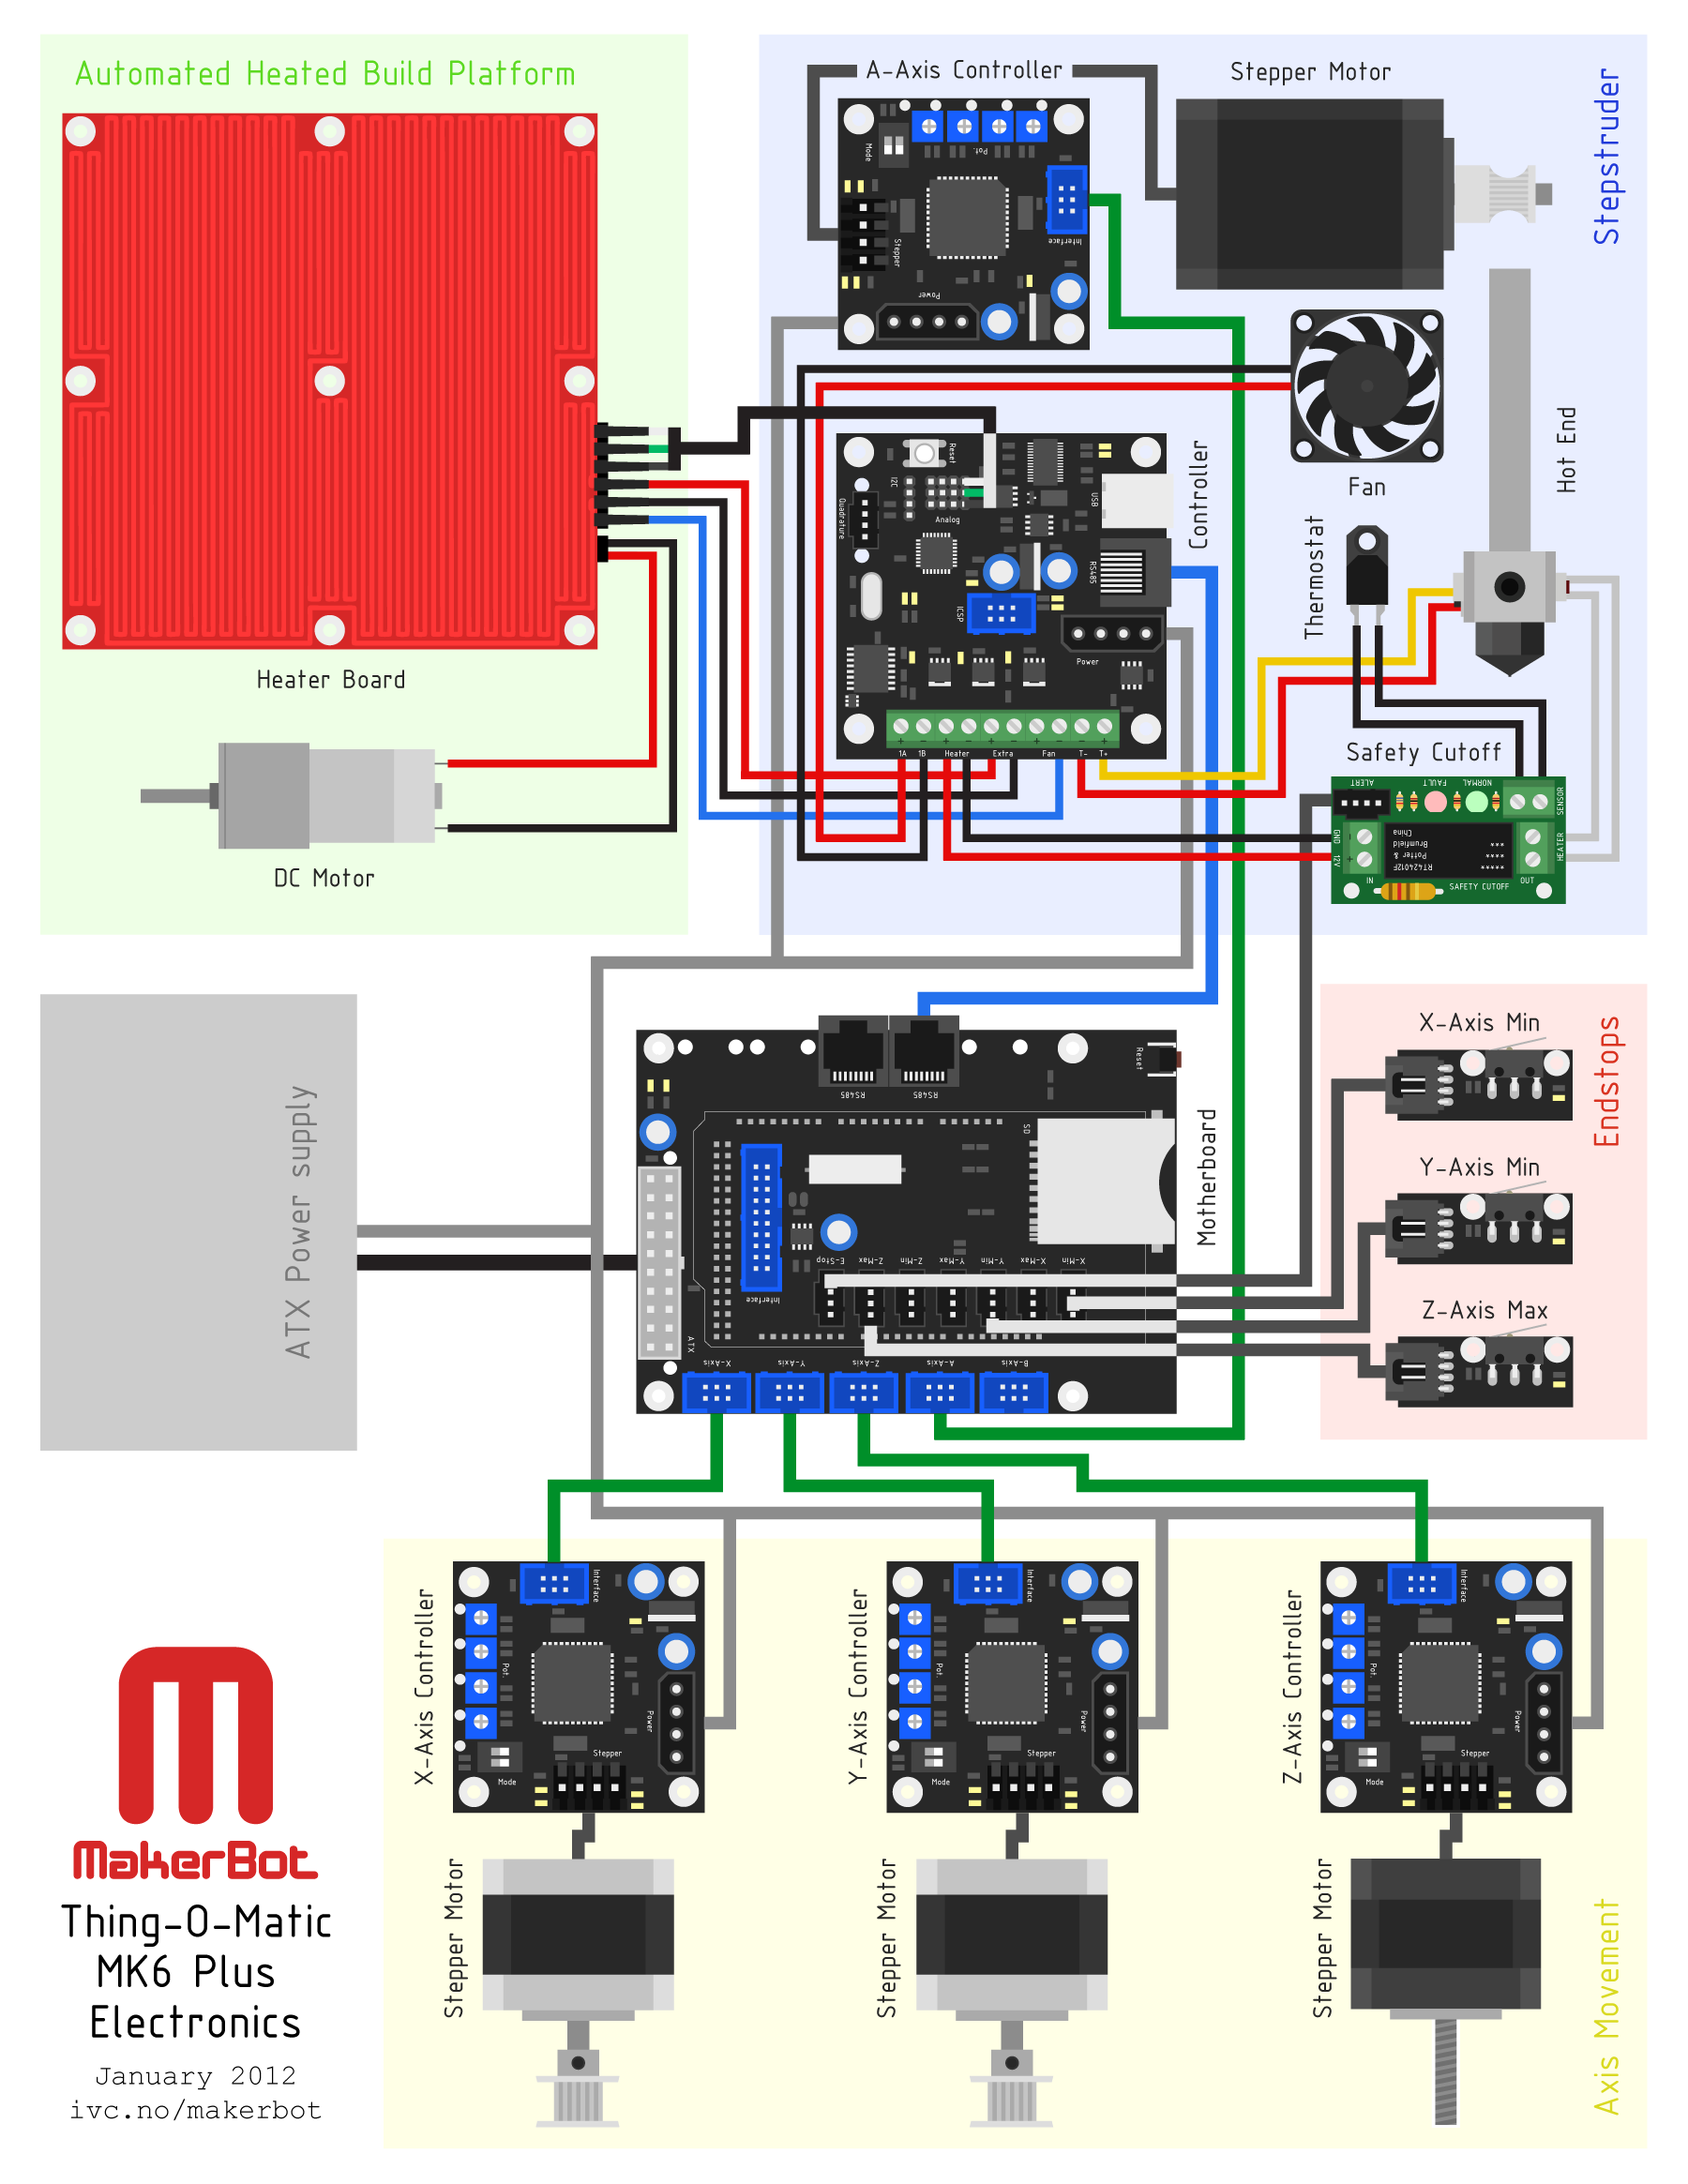 MakerBot Thing-O-Matic MK6 Plus Electronics.png